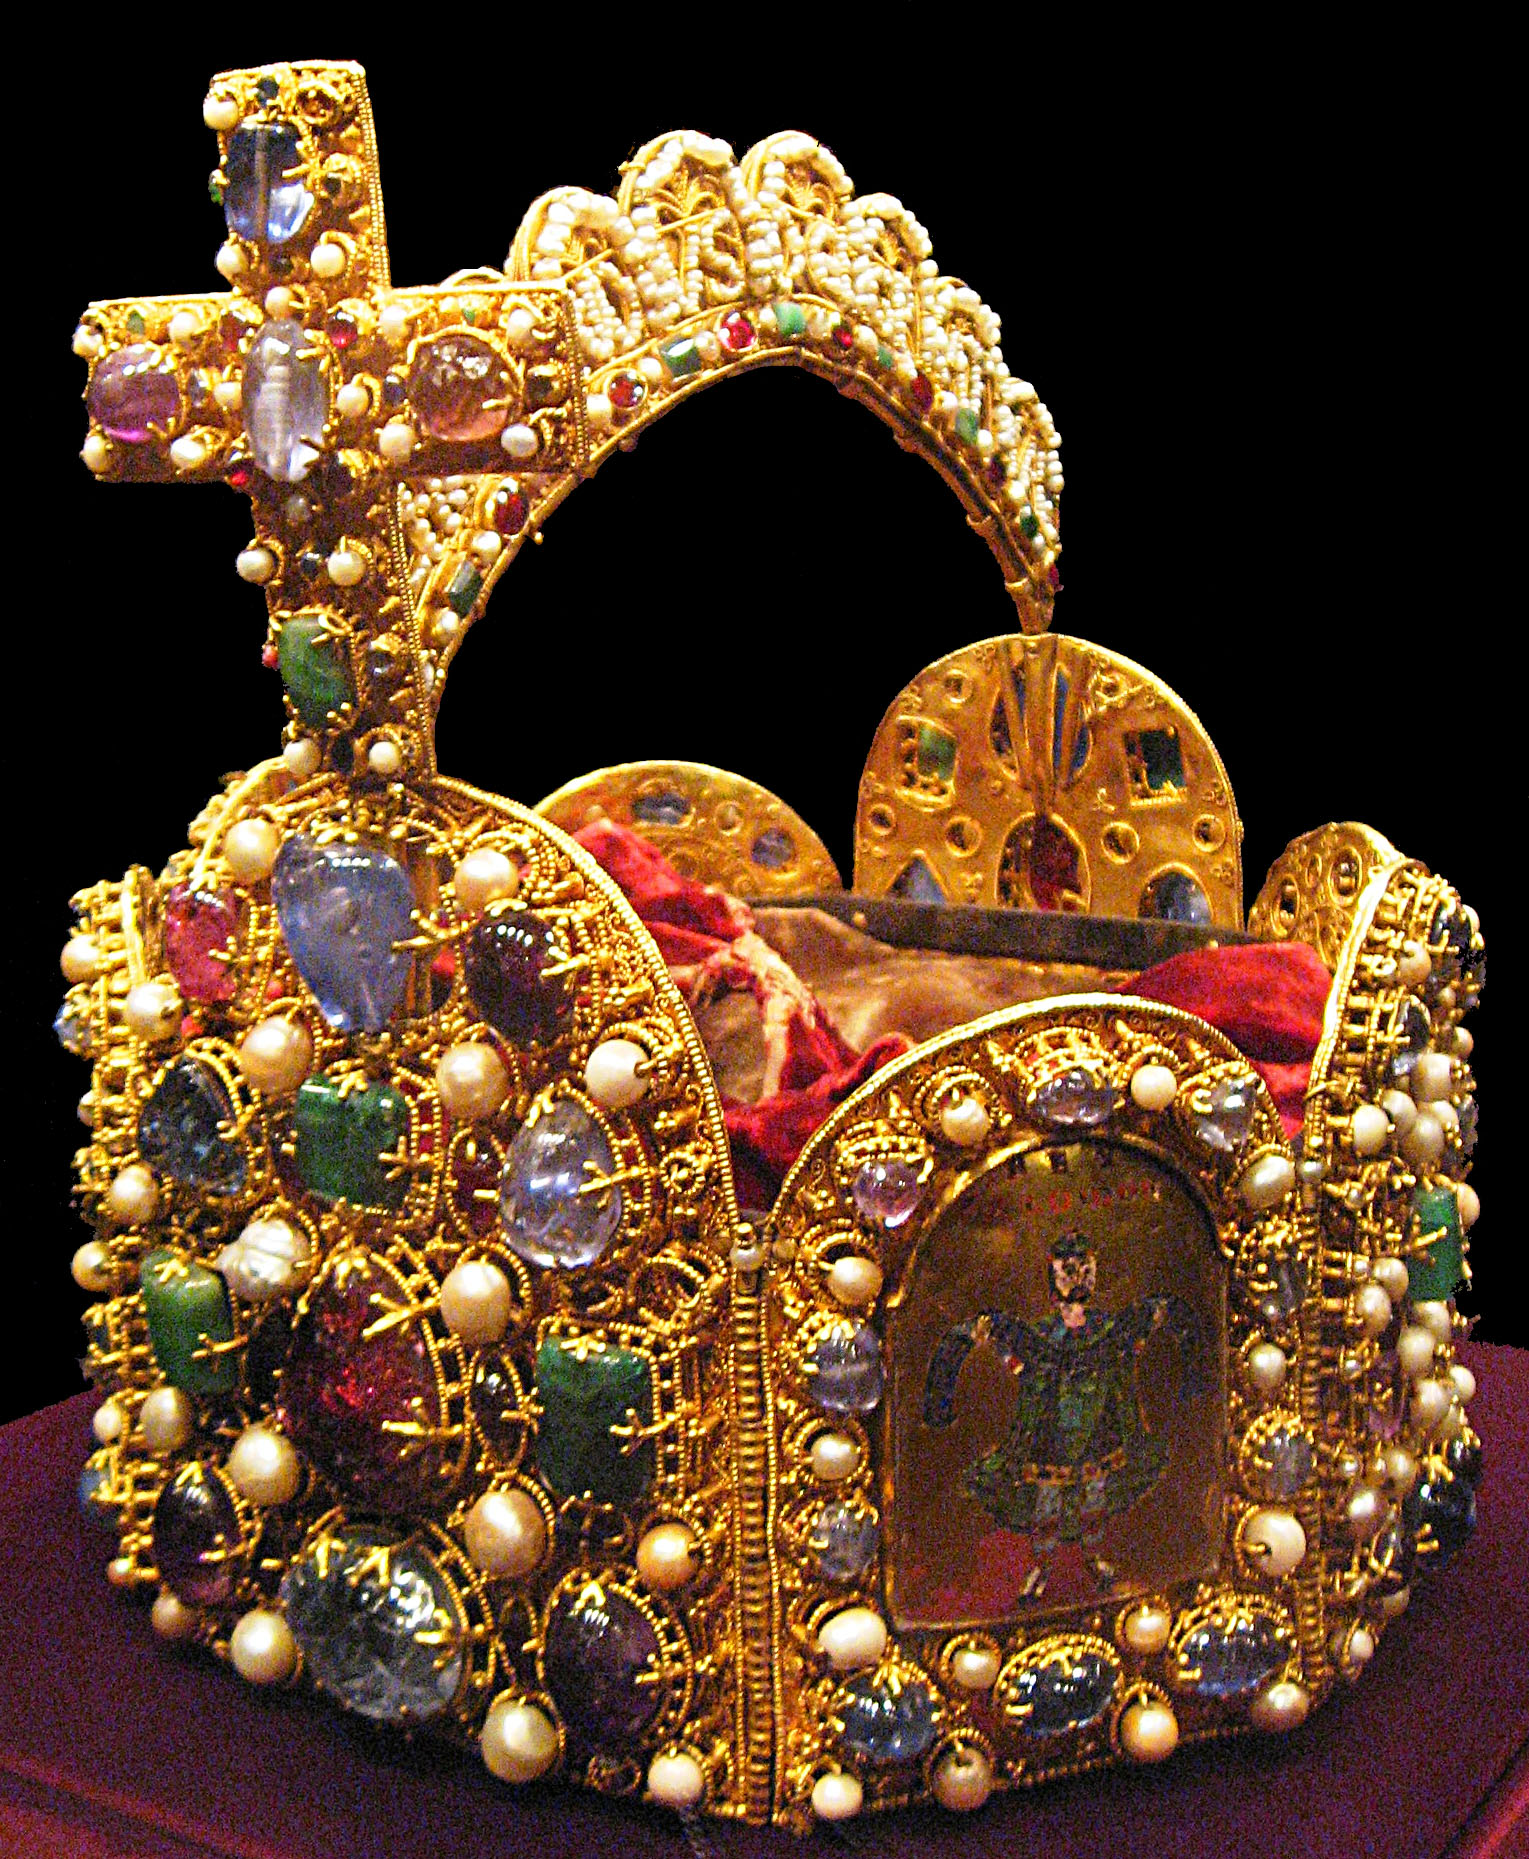 The Imperial Crown of the Holy Roman Empire. Otto was crowned as Emperor on February 2, 962, by Pope John XII.